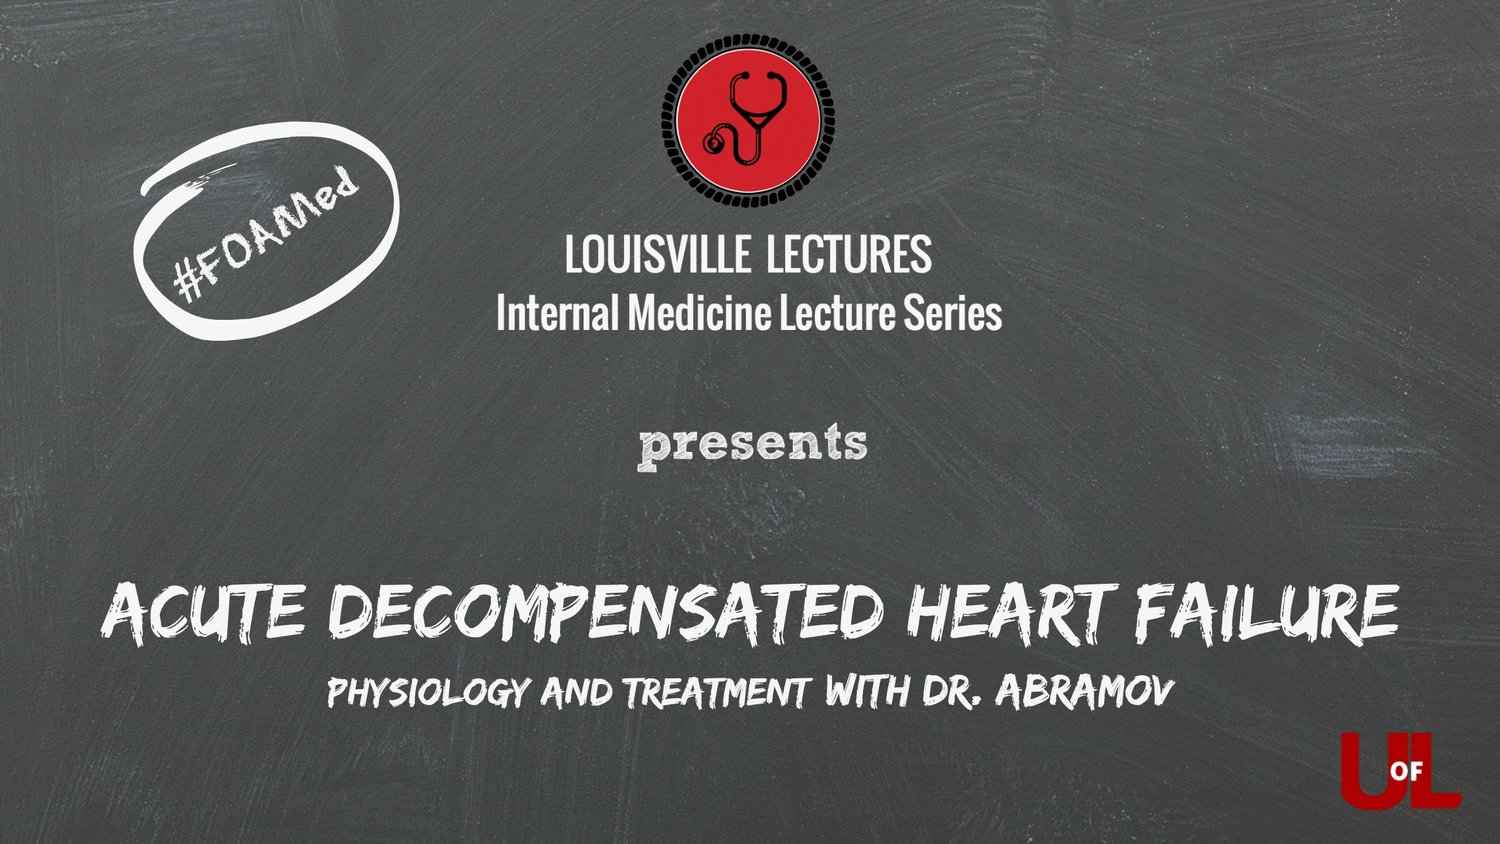 Acute Decompensated Heart Failure - Physiology and Treatment with Dr